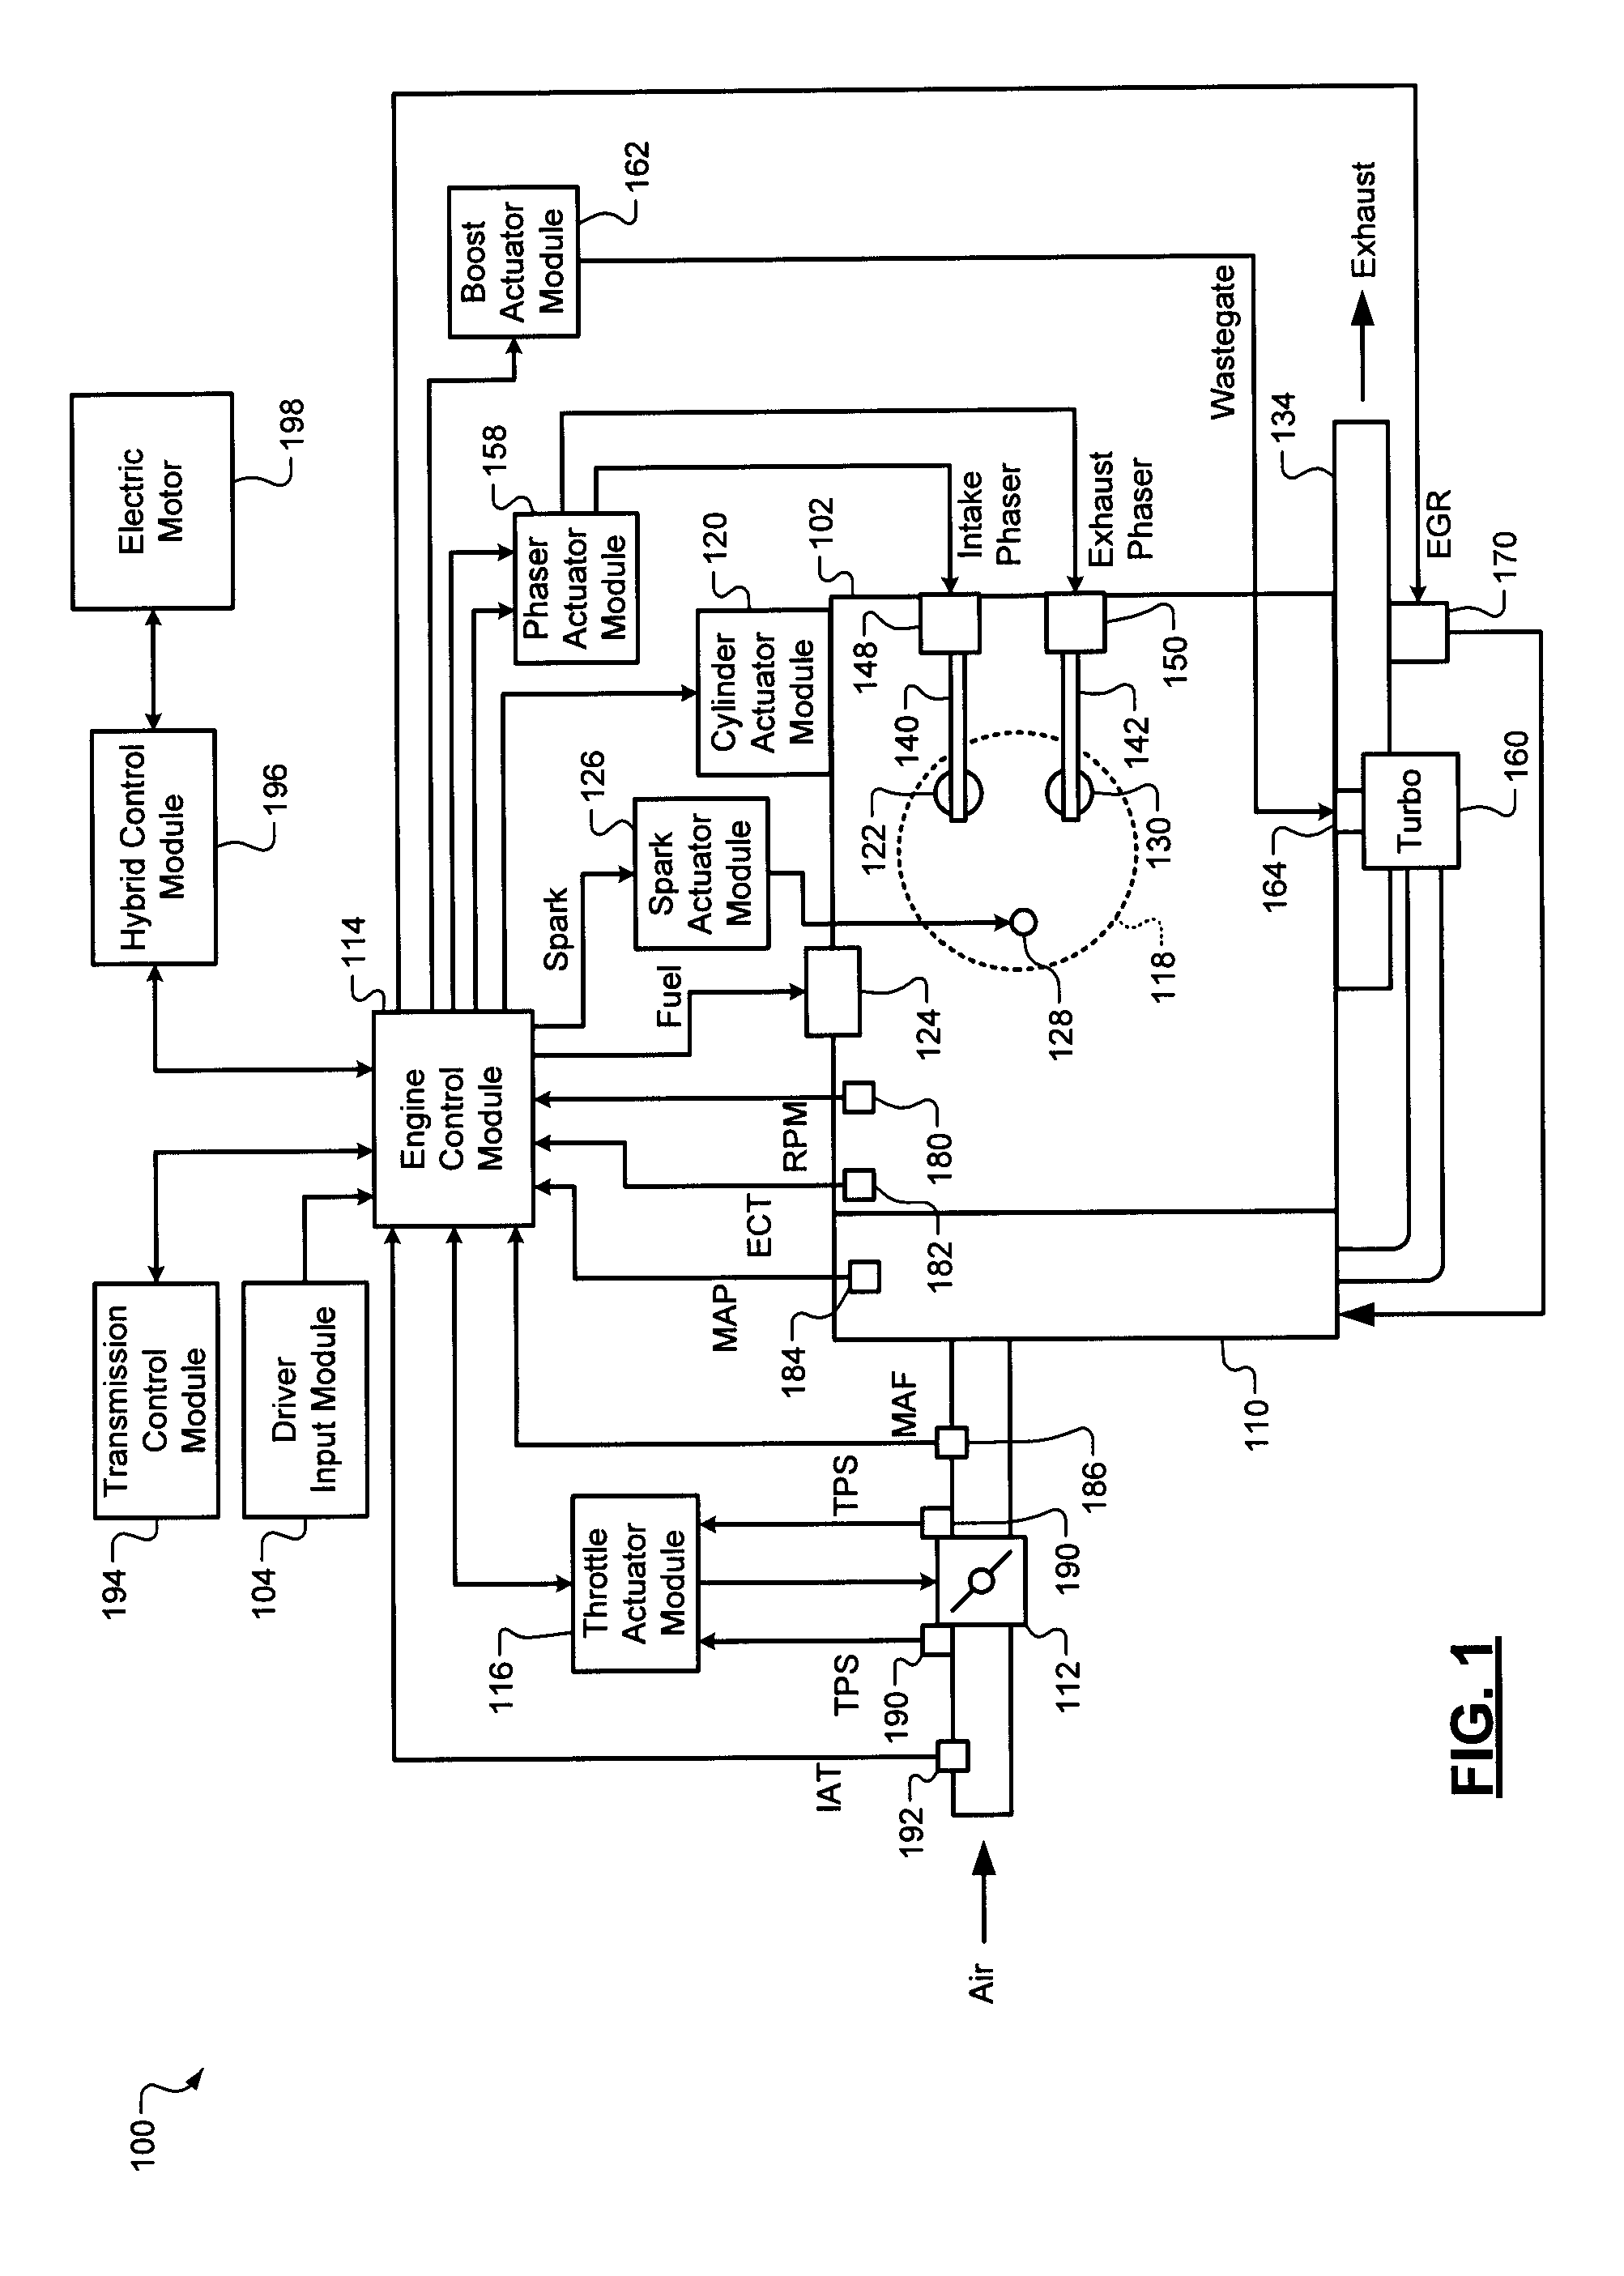 Patent Us7614384 Engine Torque Control With Desired State 134 Exhaust Valve Diagram Drawing